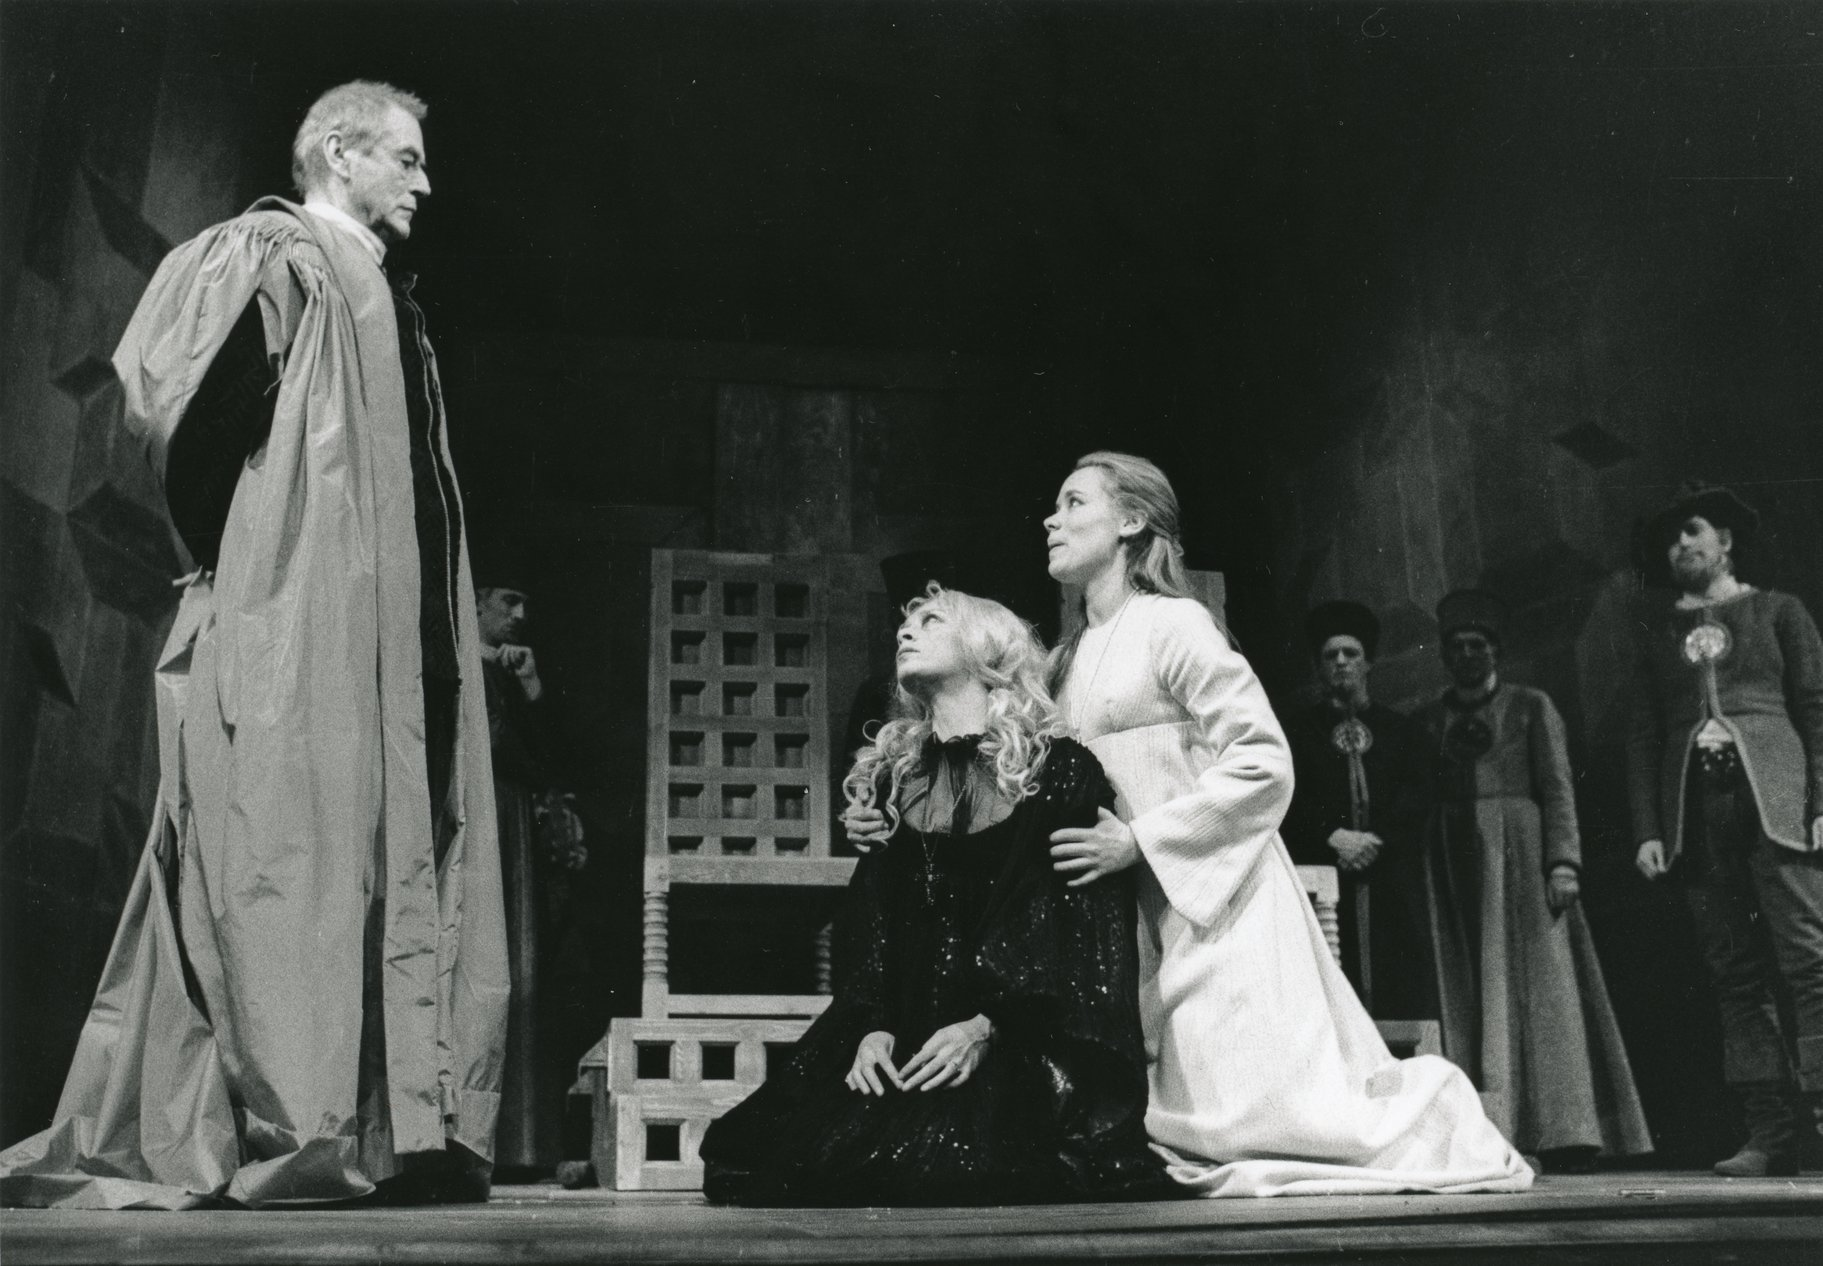 Two women kneel before a man in long robes.